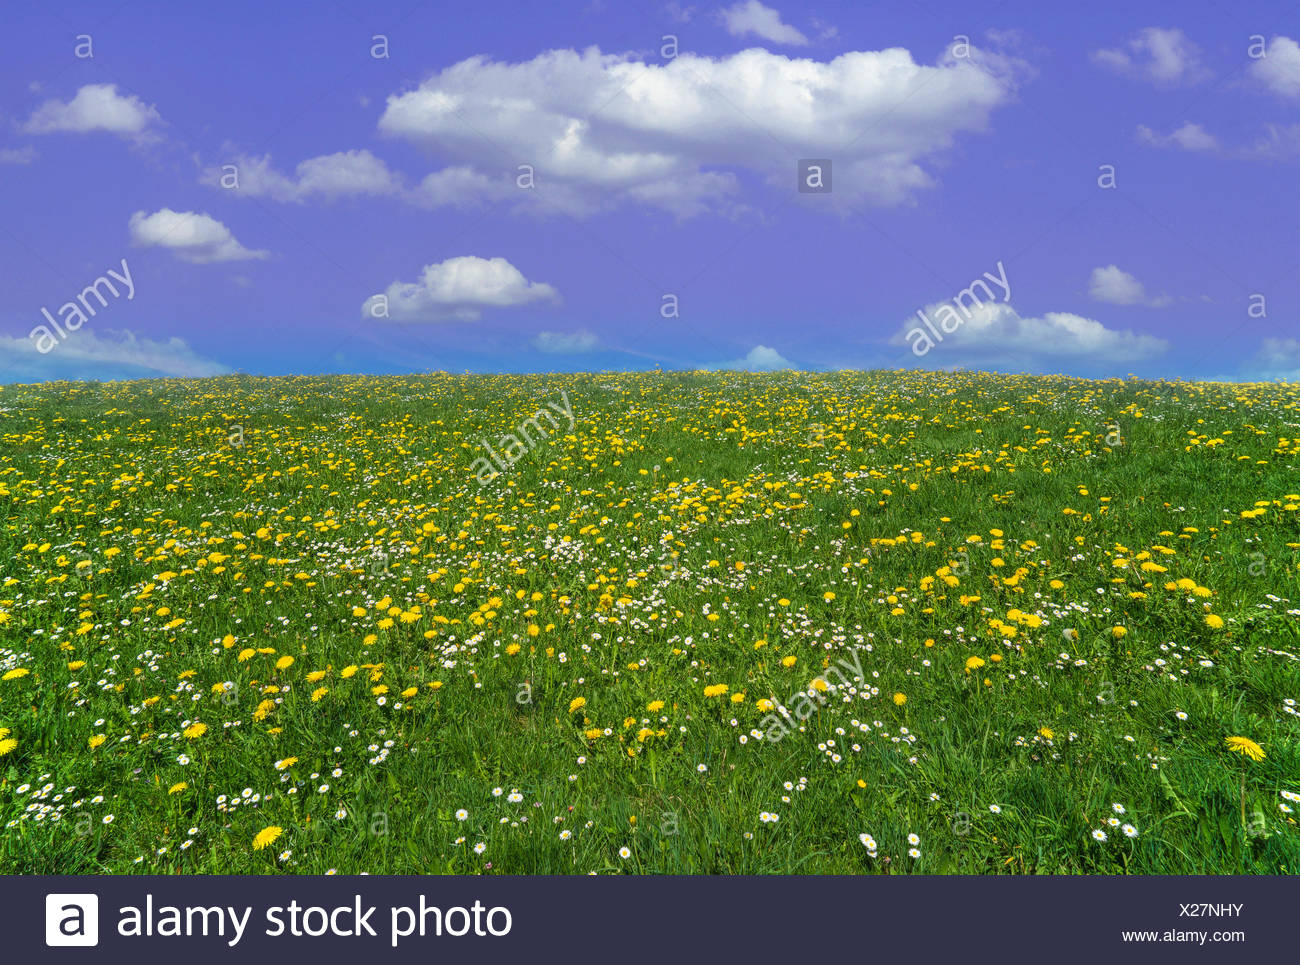 dandelion meadow and blue sky with cumulus clouds, Germany, Bavaria, Oberbayern, Upper Bavaria - Stock Image